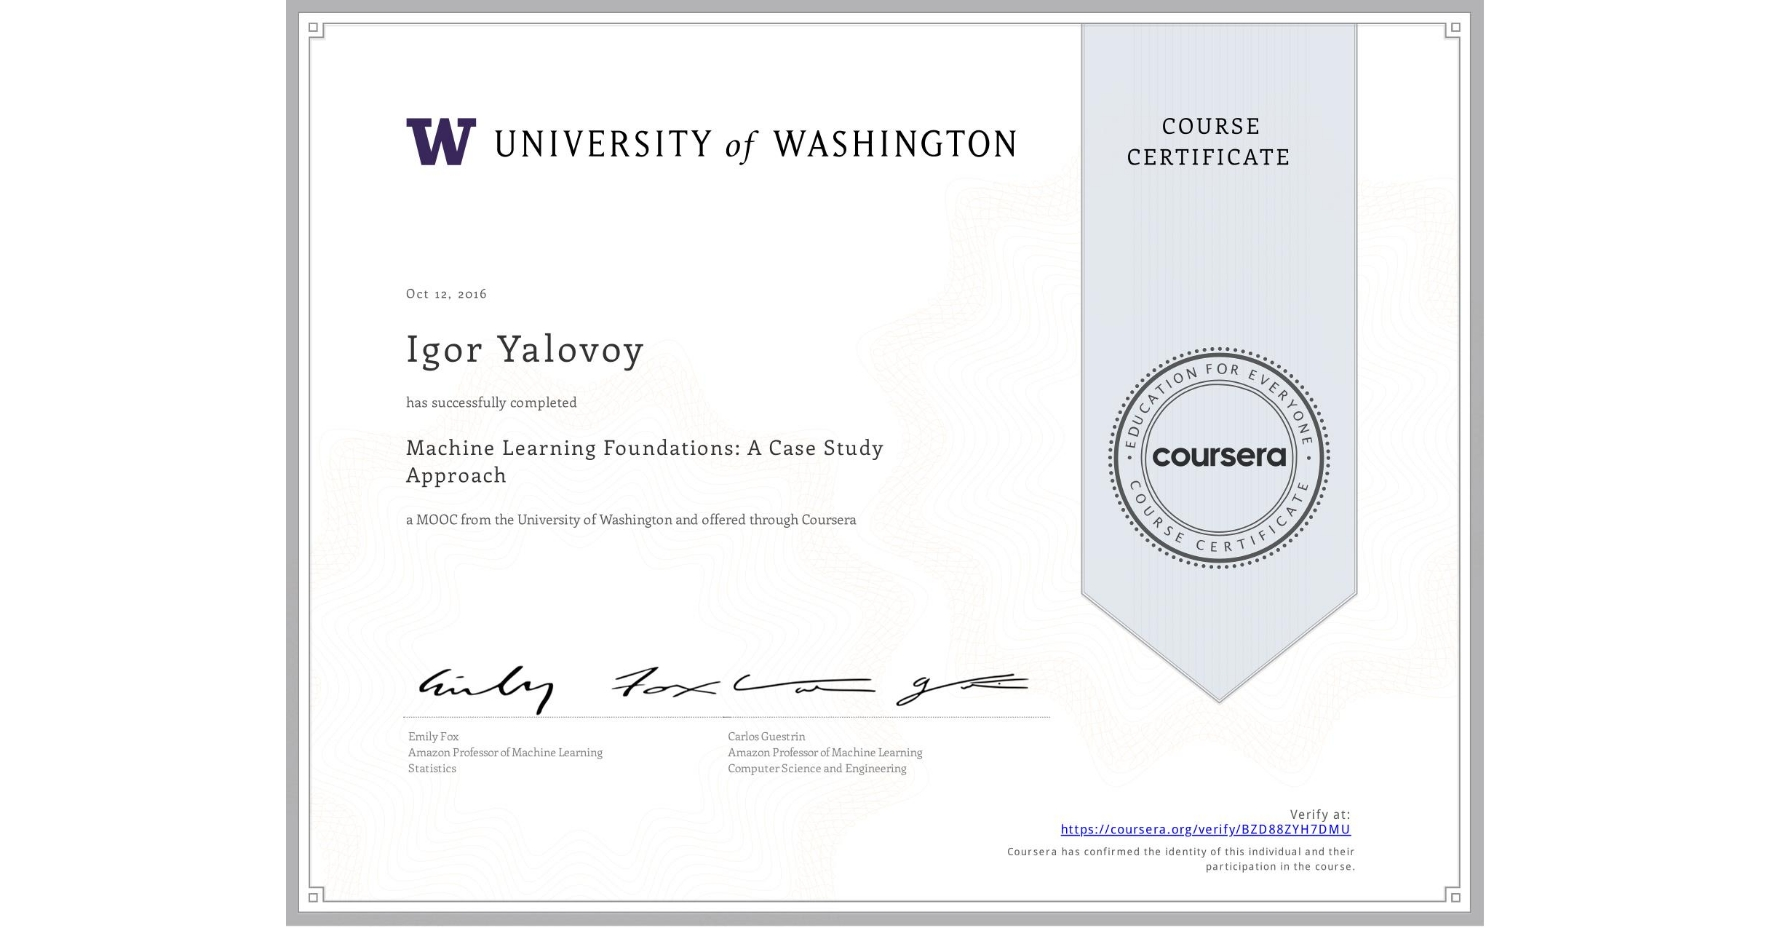 View certificate for Igor Yalovoy, Machine Learning Foundations: A Case Study Approach, an online non-credit course authorized by University of Washington and offered through Coursera